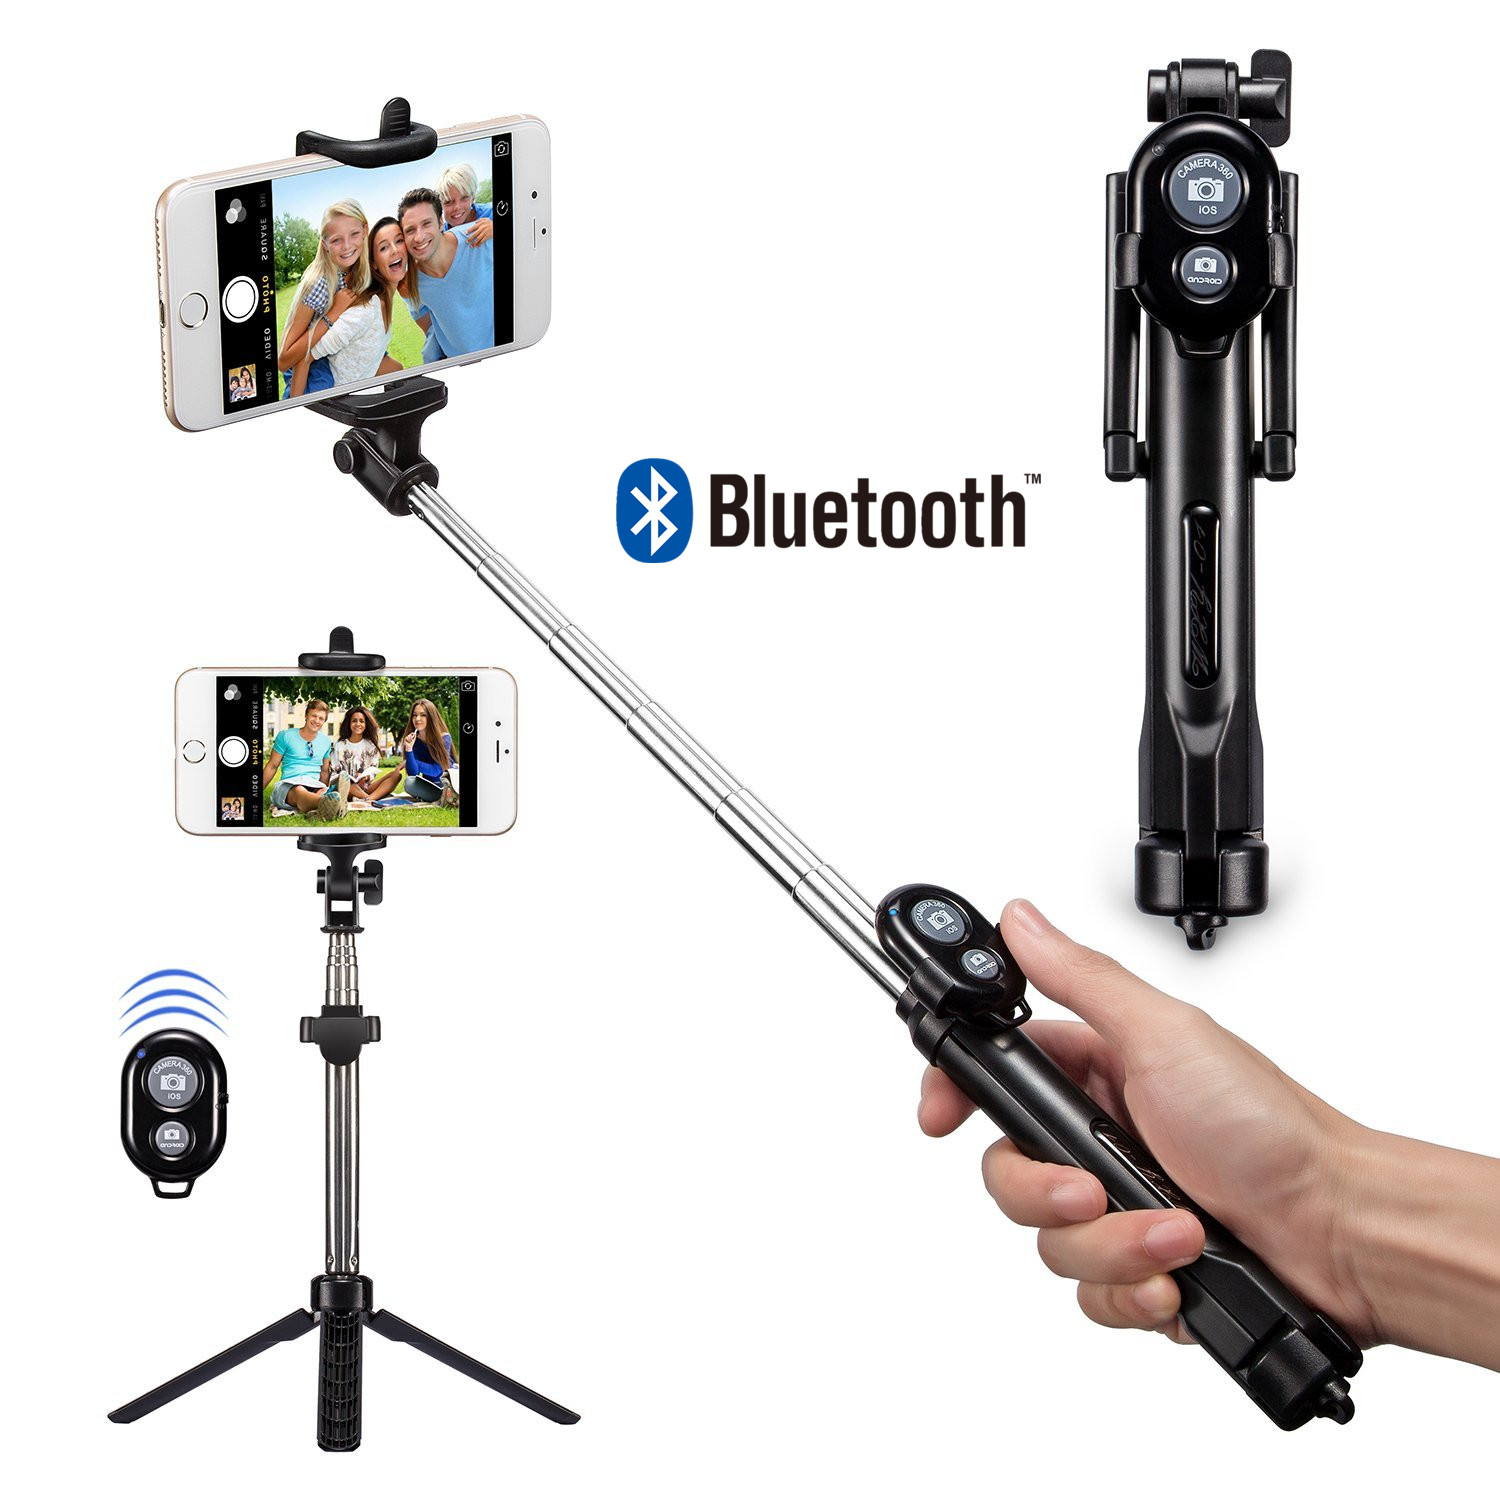 FGHGF T1 Bluetooth Remote Tripod Selfie Stick Extendable Mini Monopod Universal Pau De Palo selfie stick For iphone X se 8 S